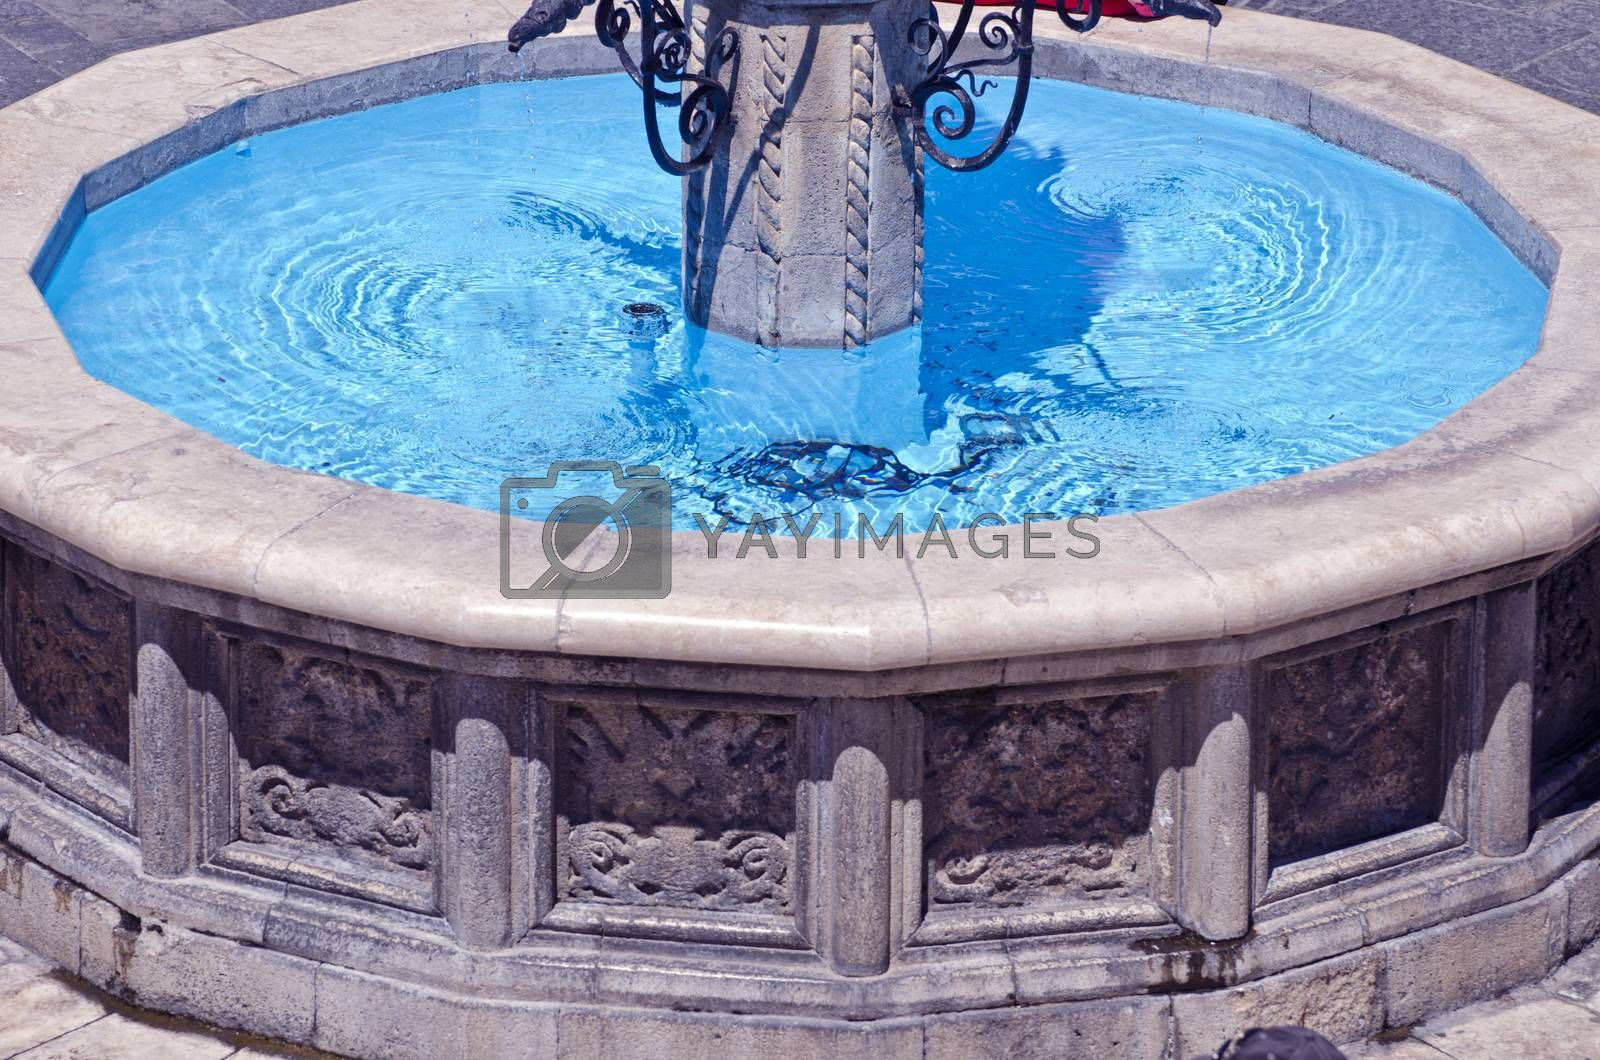 Royalty free image of Old decorative city Fountain with blue water by alis_photo